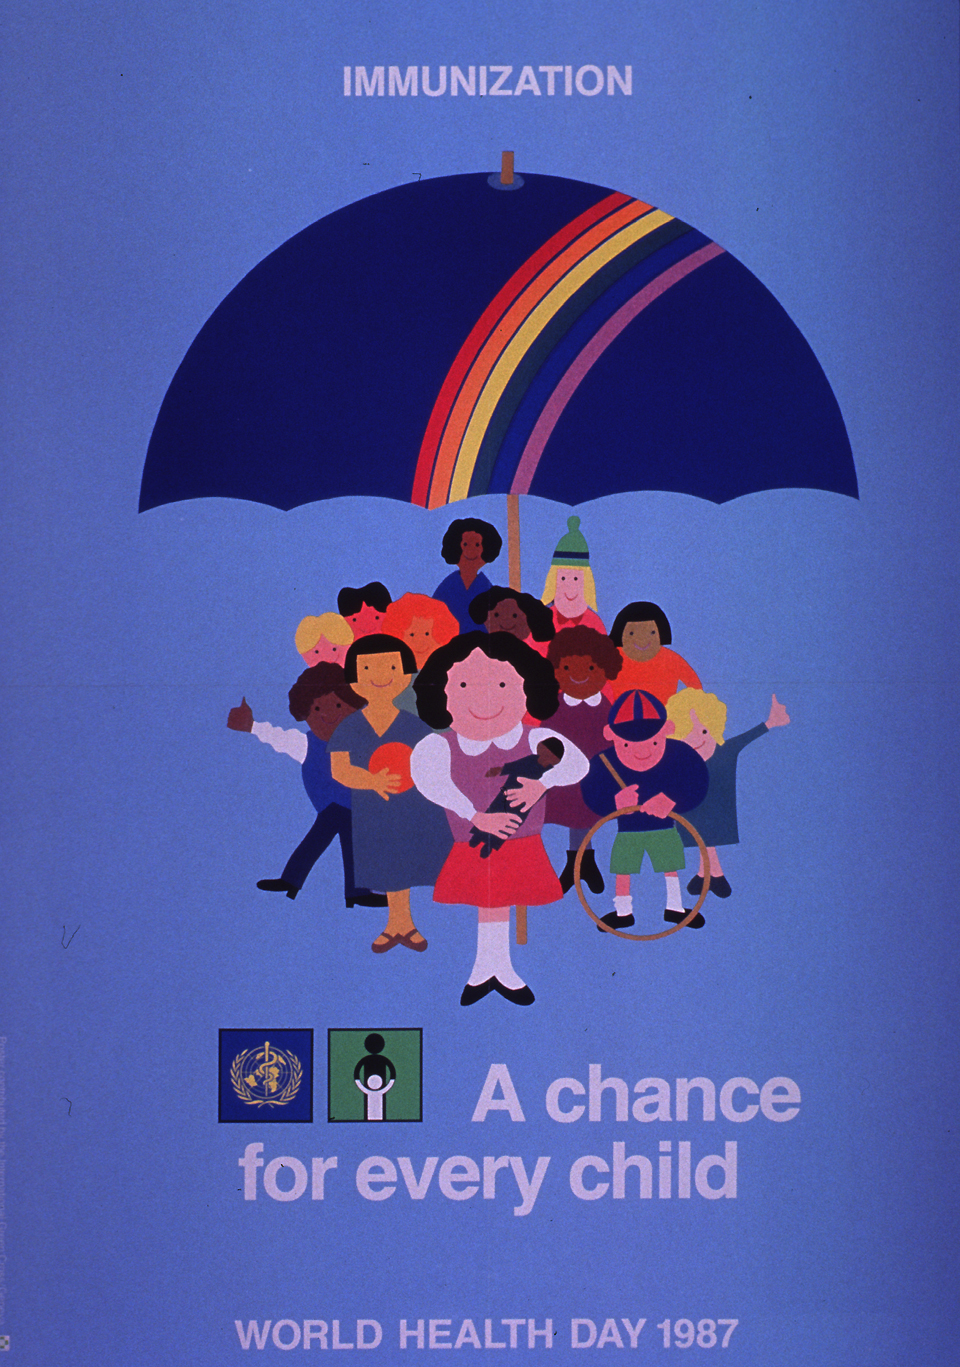 visual culture and public health posters